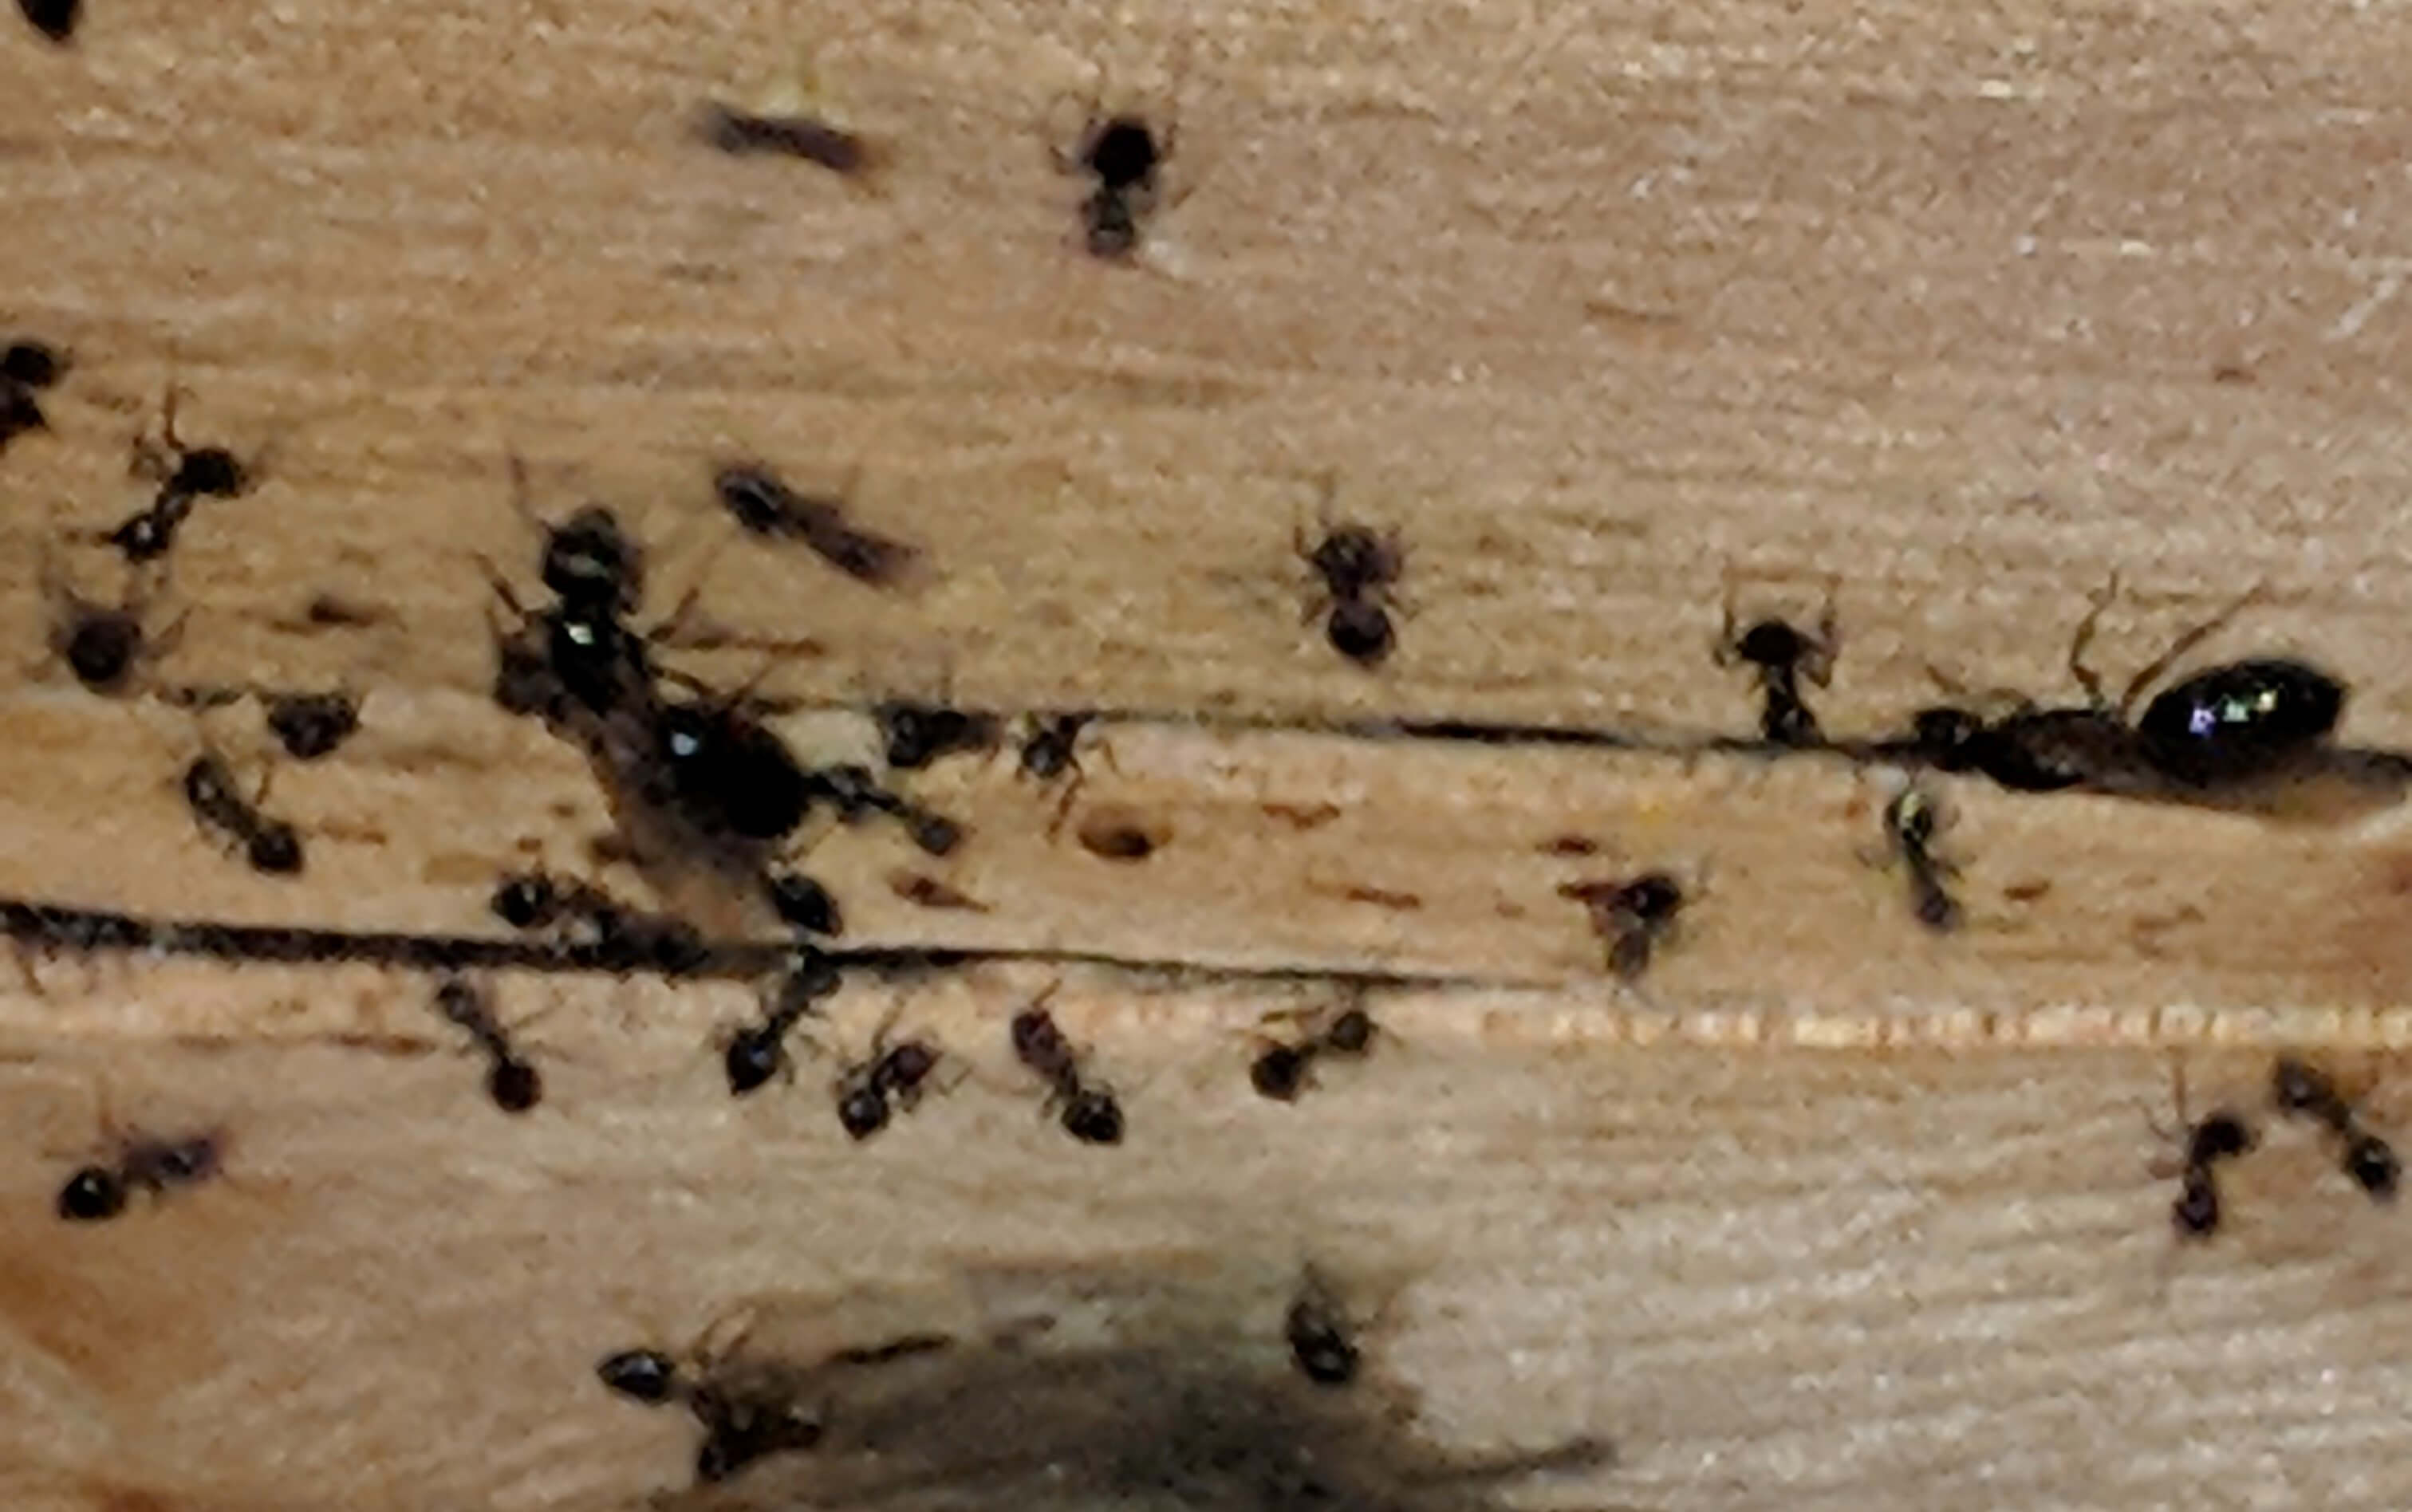 carpenter ants vs odorous house ants